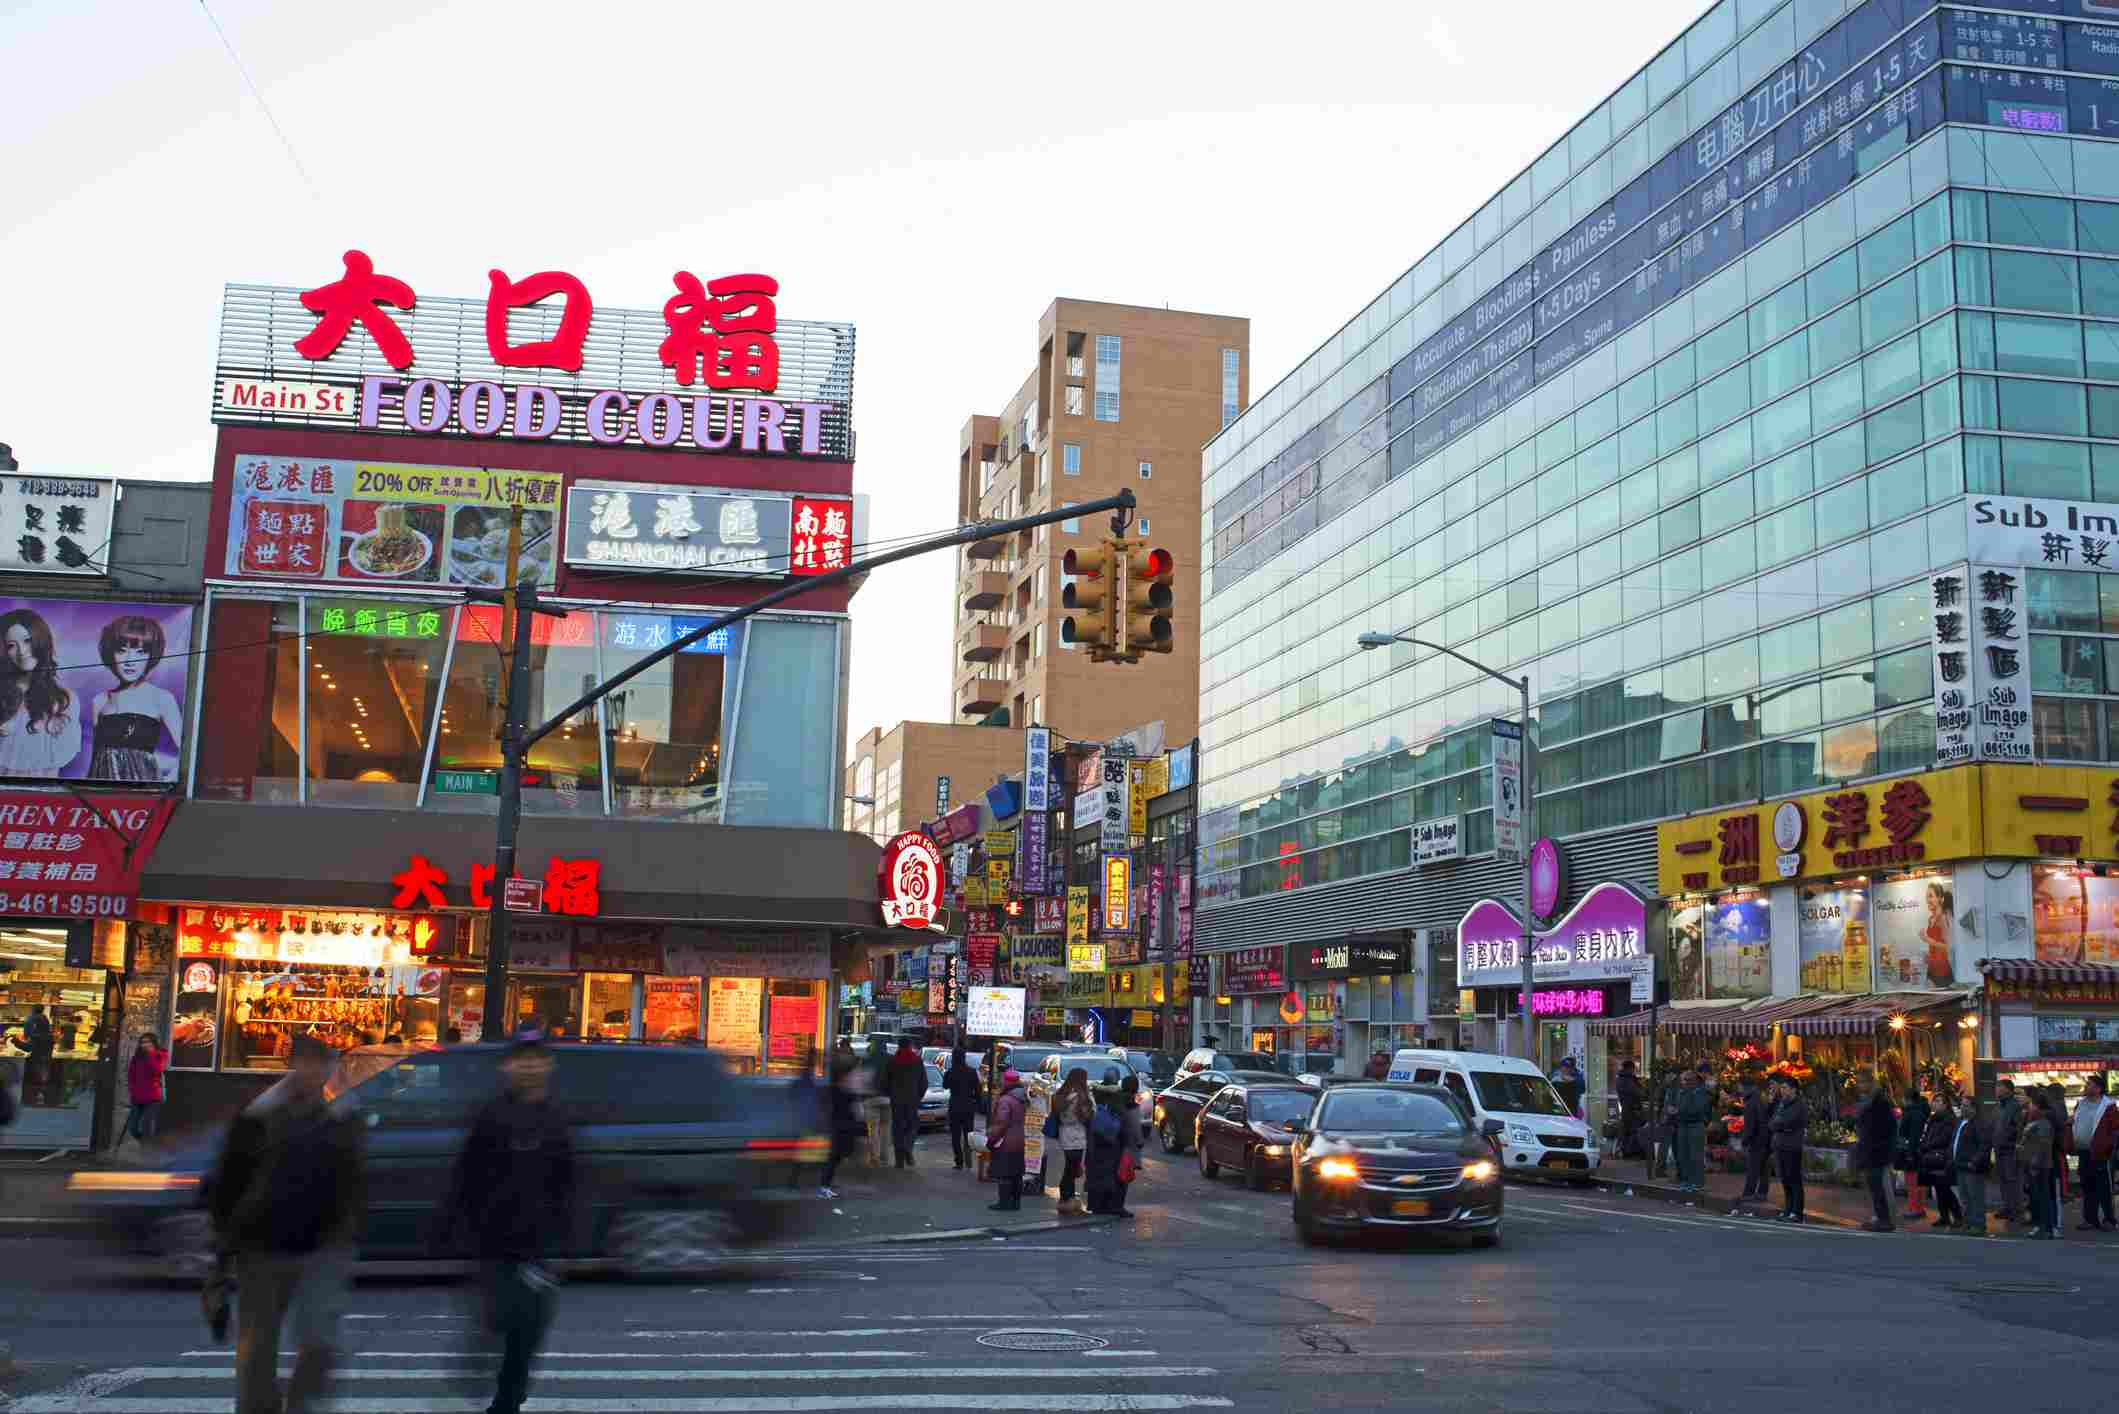 Main Street in Flushing Queens, NY